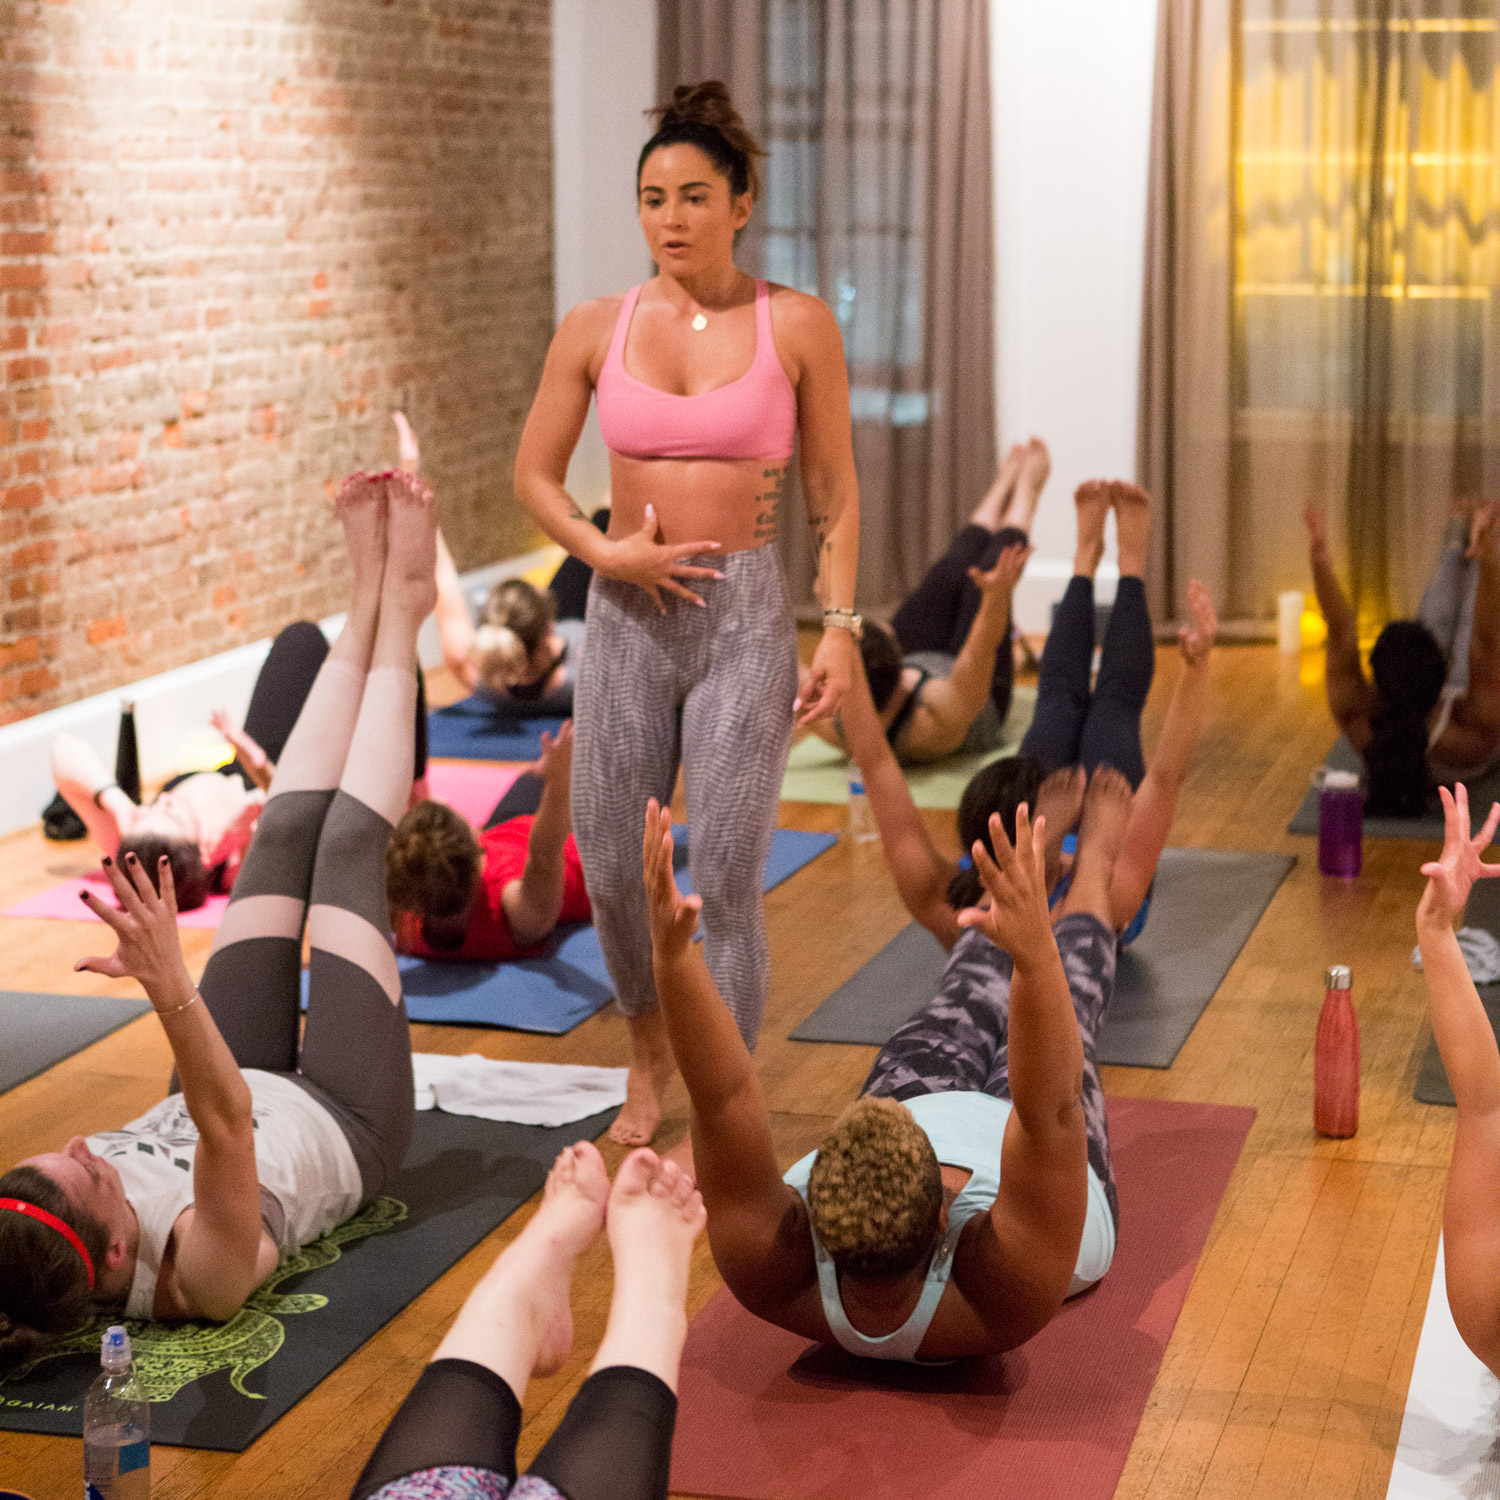 Most-embarrassing-teaching-moment-yoga